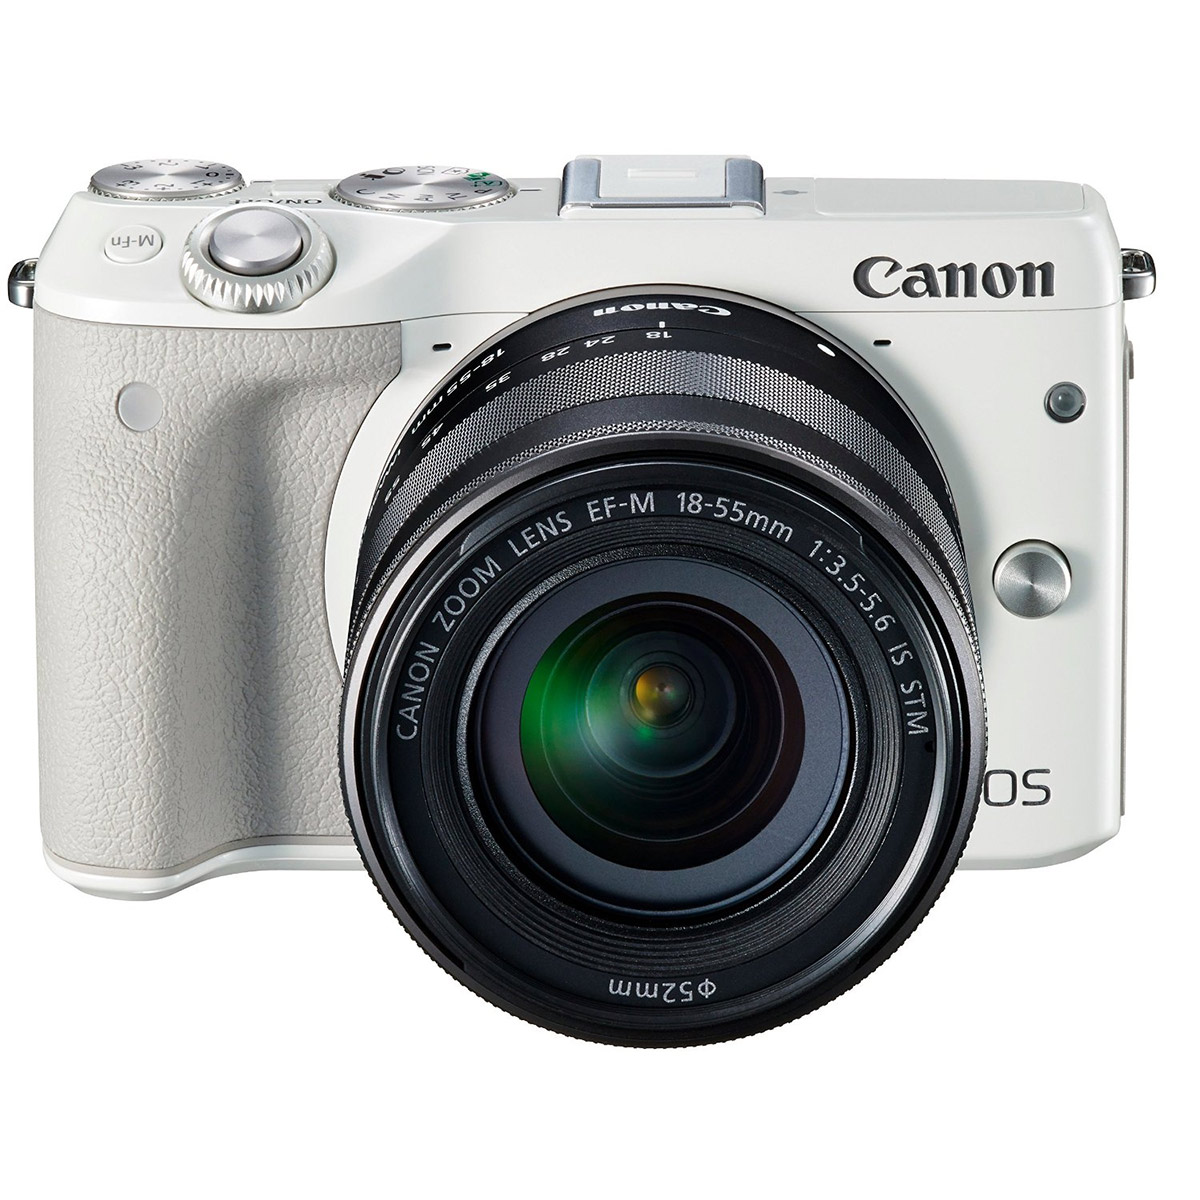 canon-eos-m3-kit-with-ef-m-18-55mm-is-9uuq9j